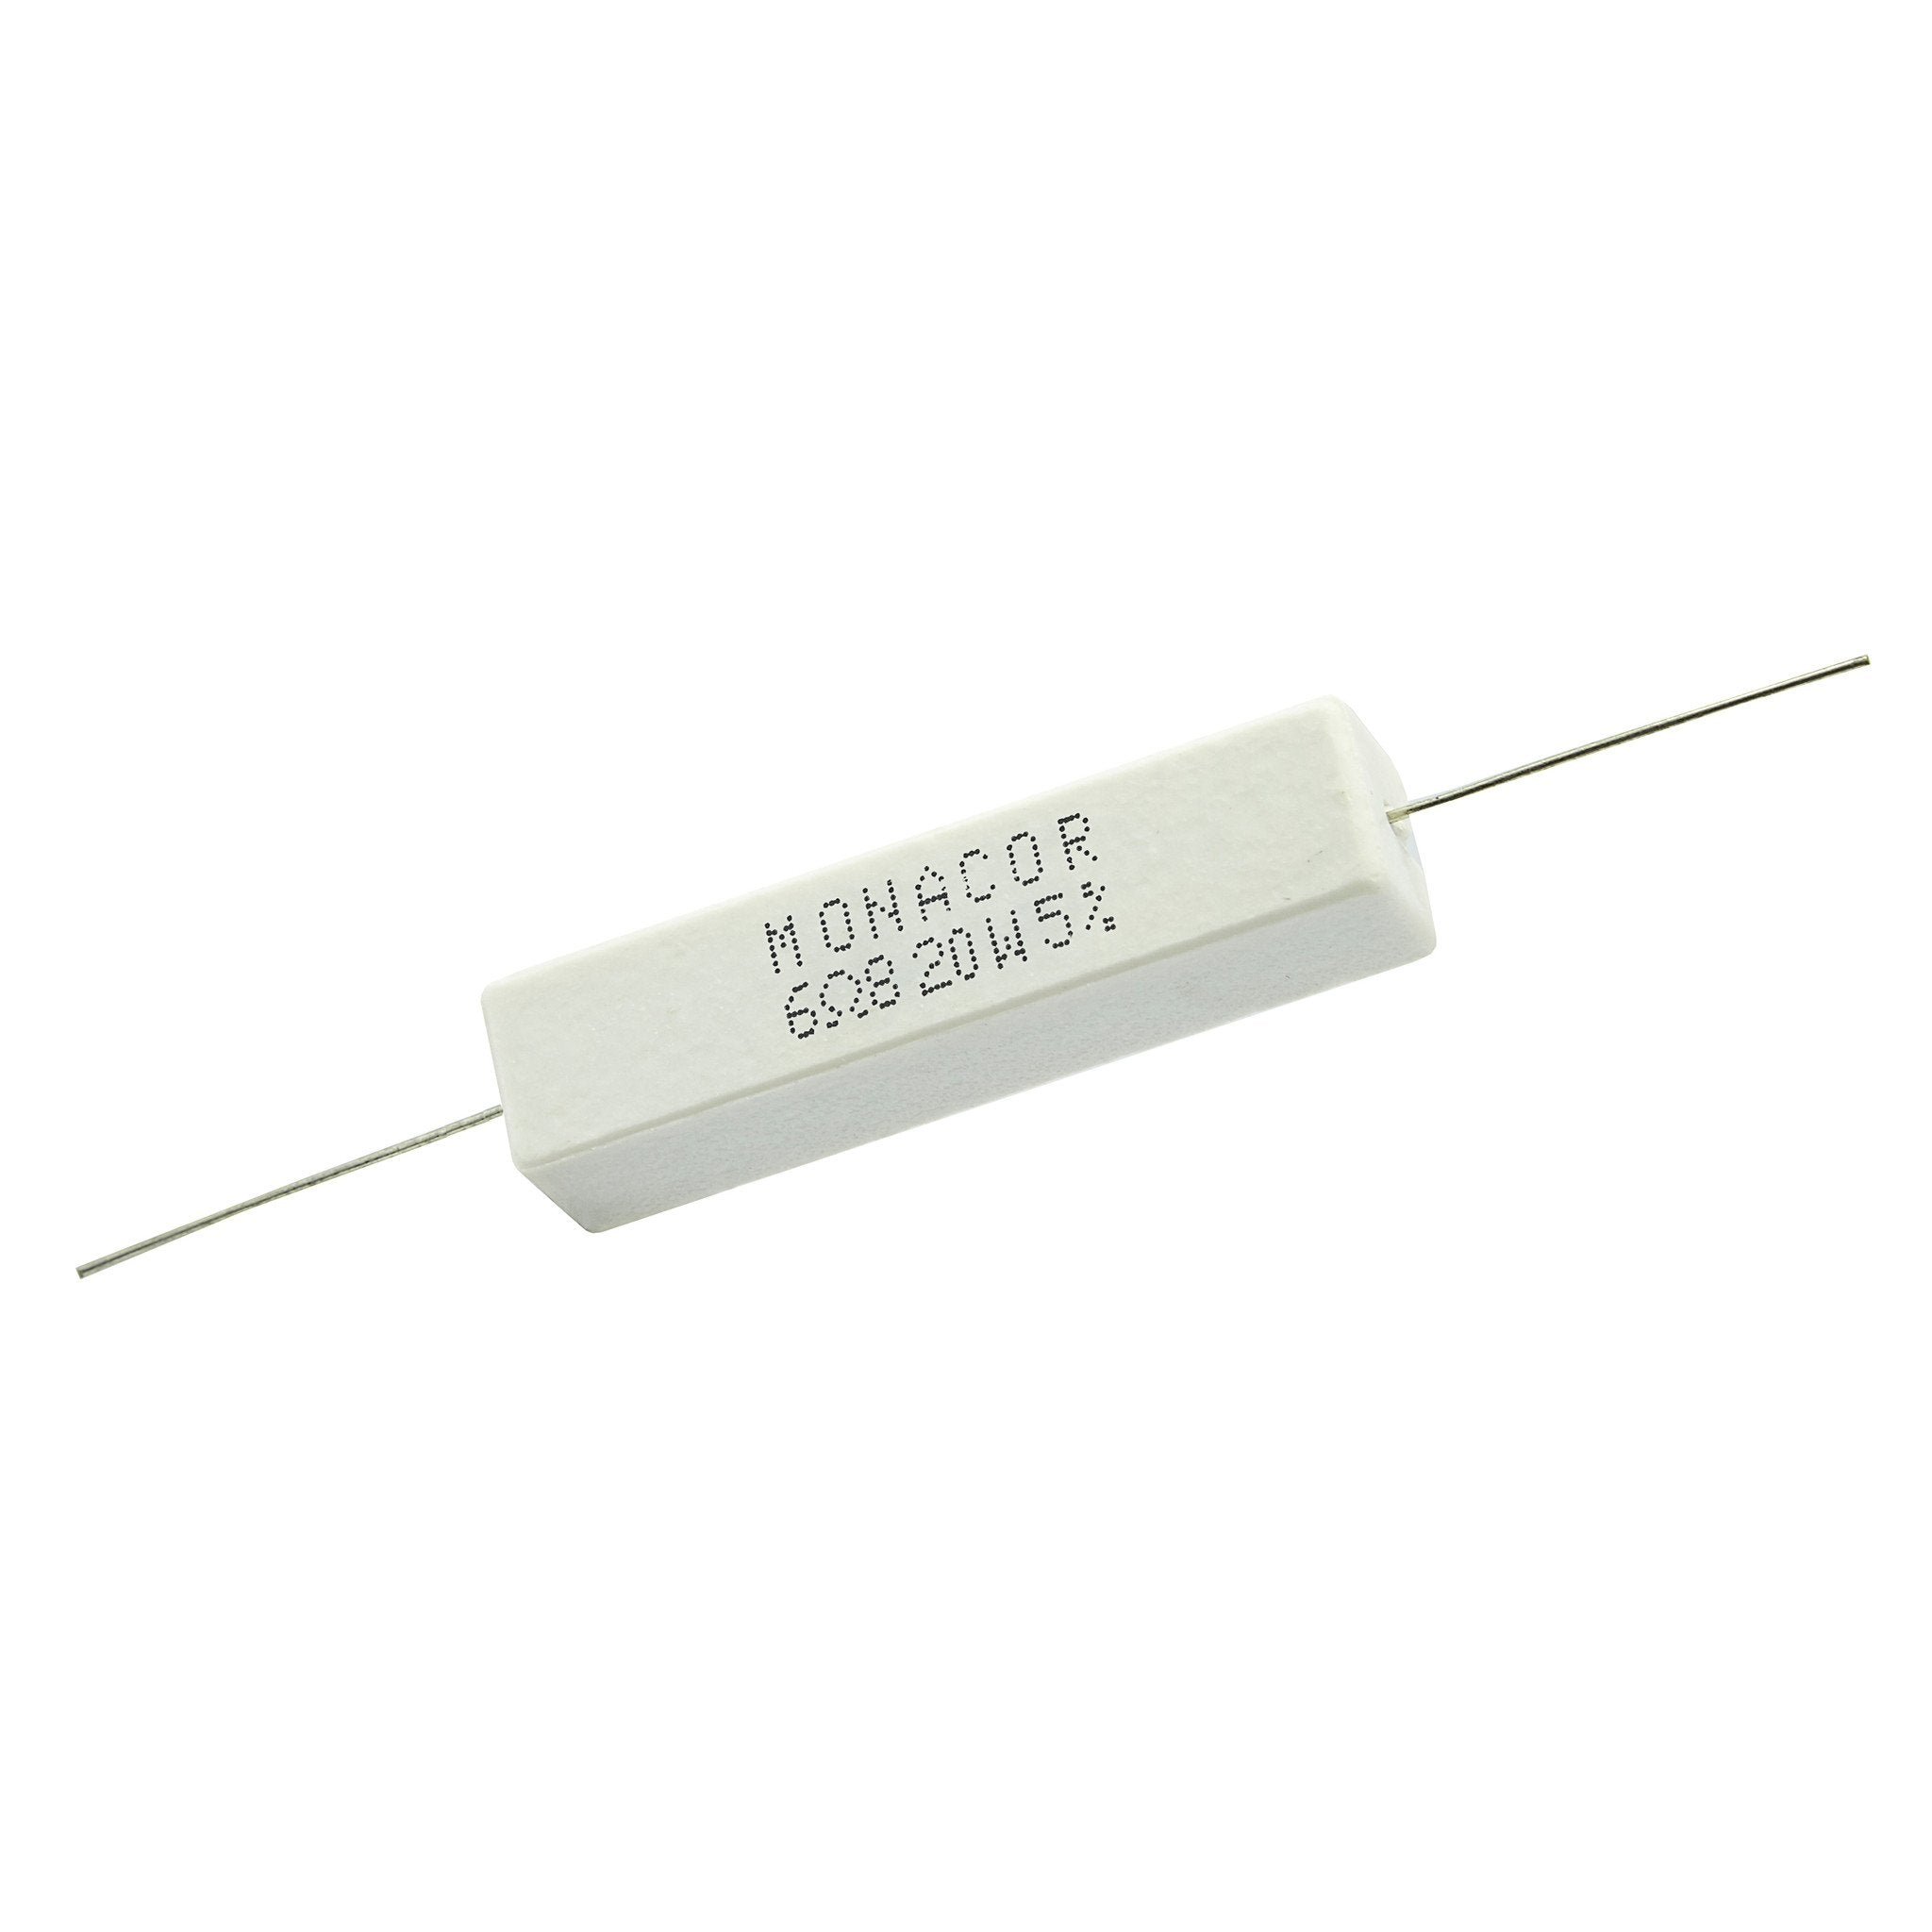 6.8 Ohm 20 Watt 5% Ceramic Wirewound Resistor - Willys-Hifi Ltd